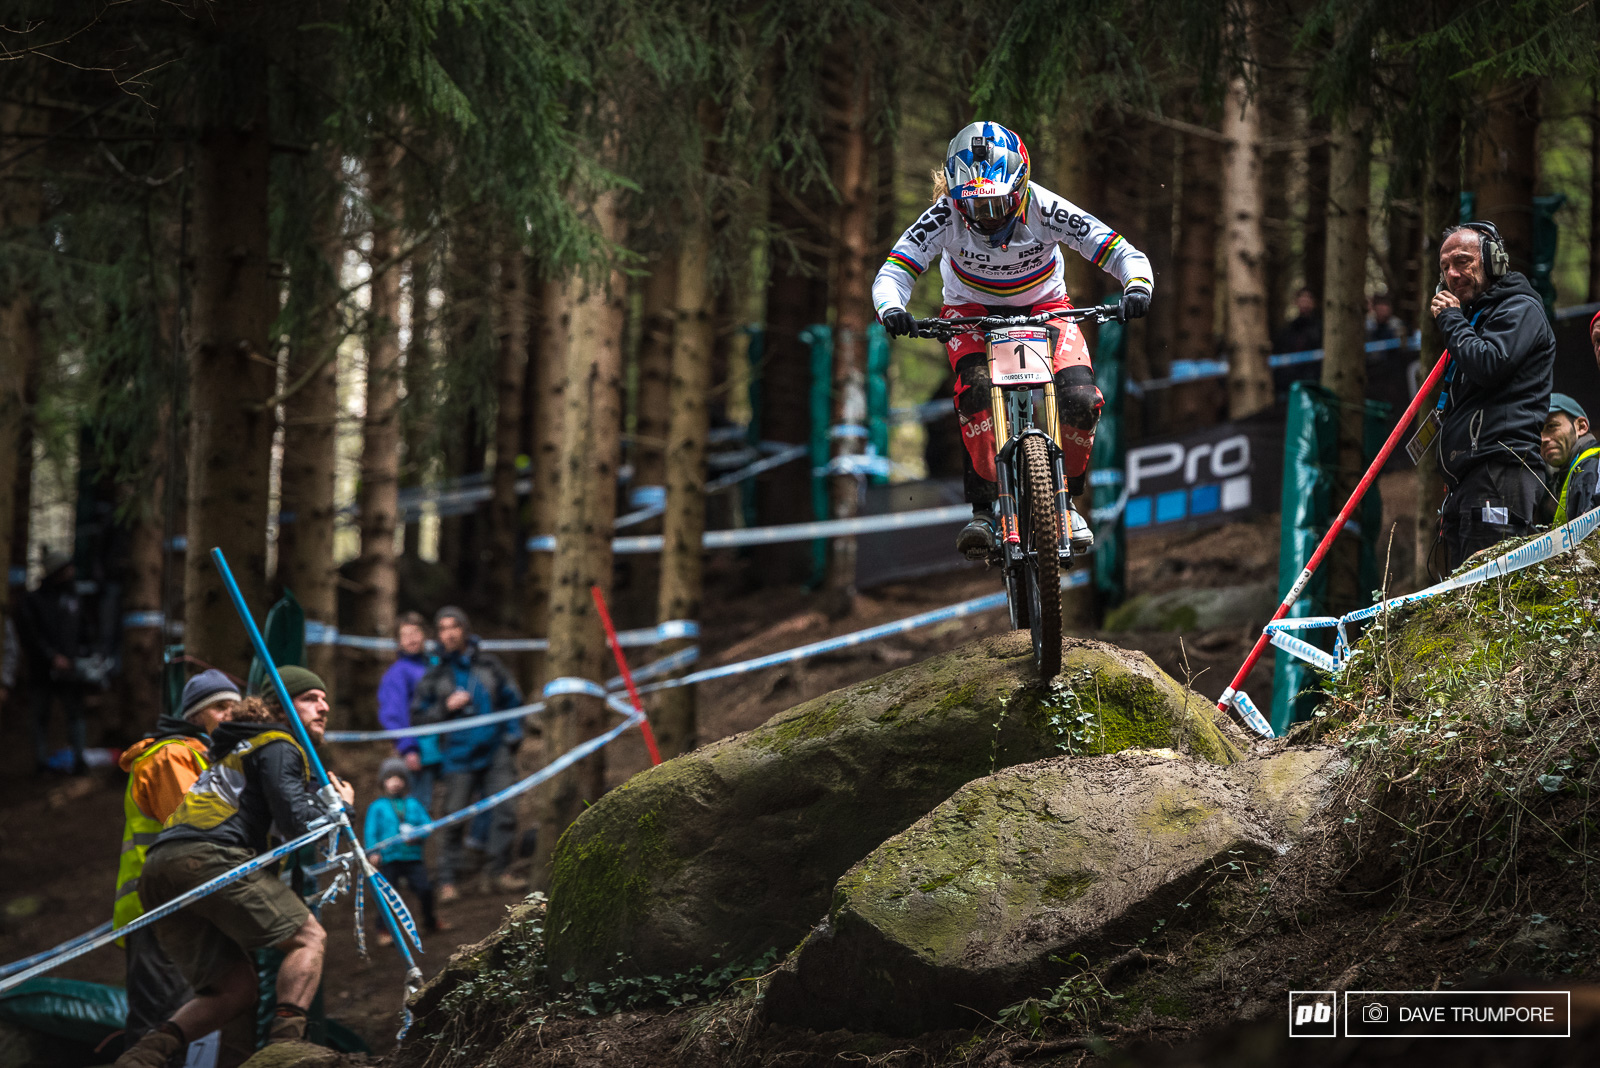 Another race and another victory for Rachel Atherton but this one was hard fought and definitely did not come easy.